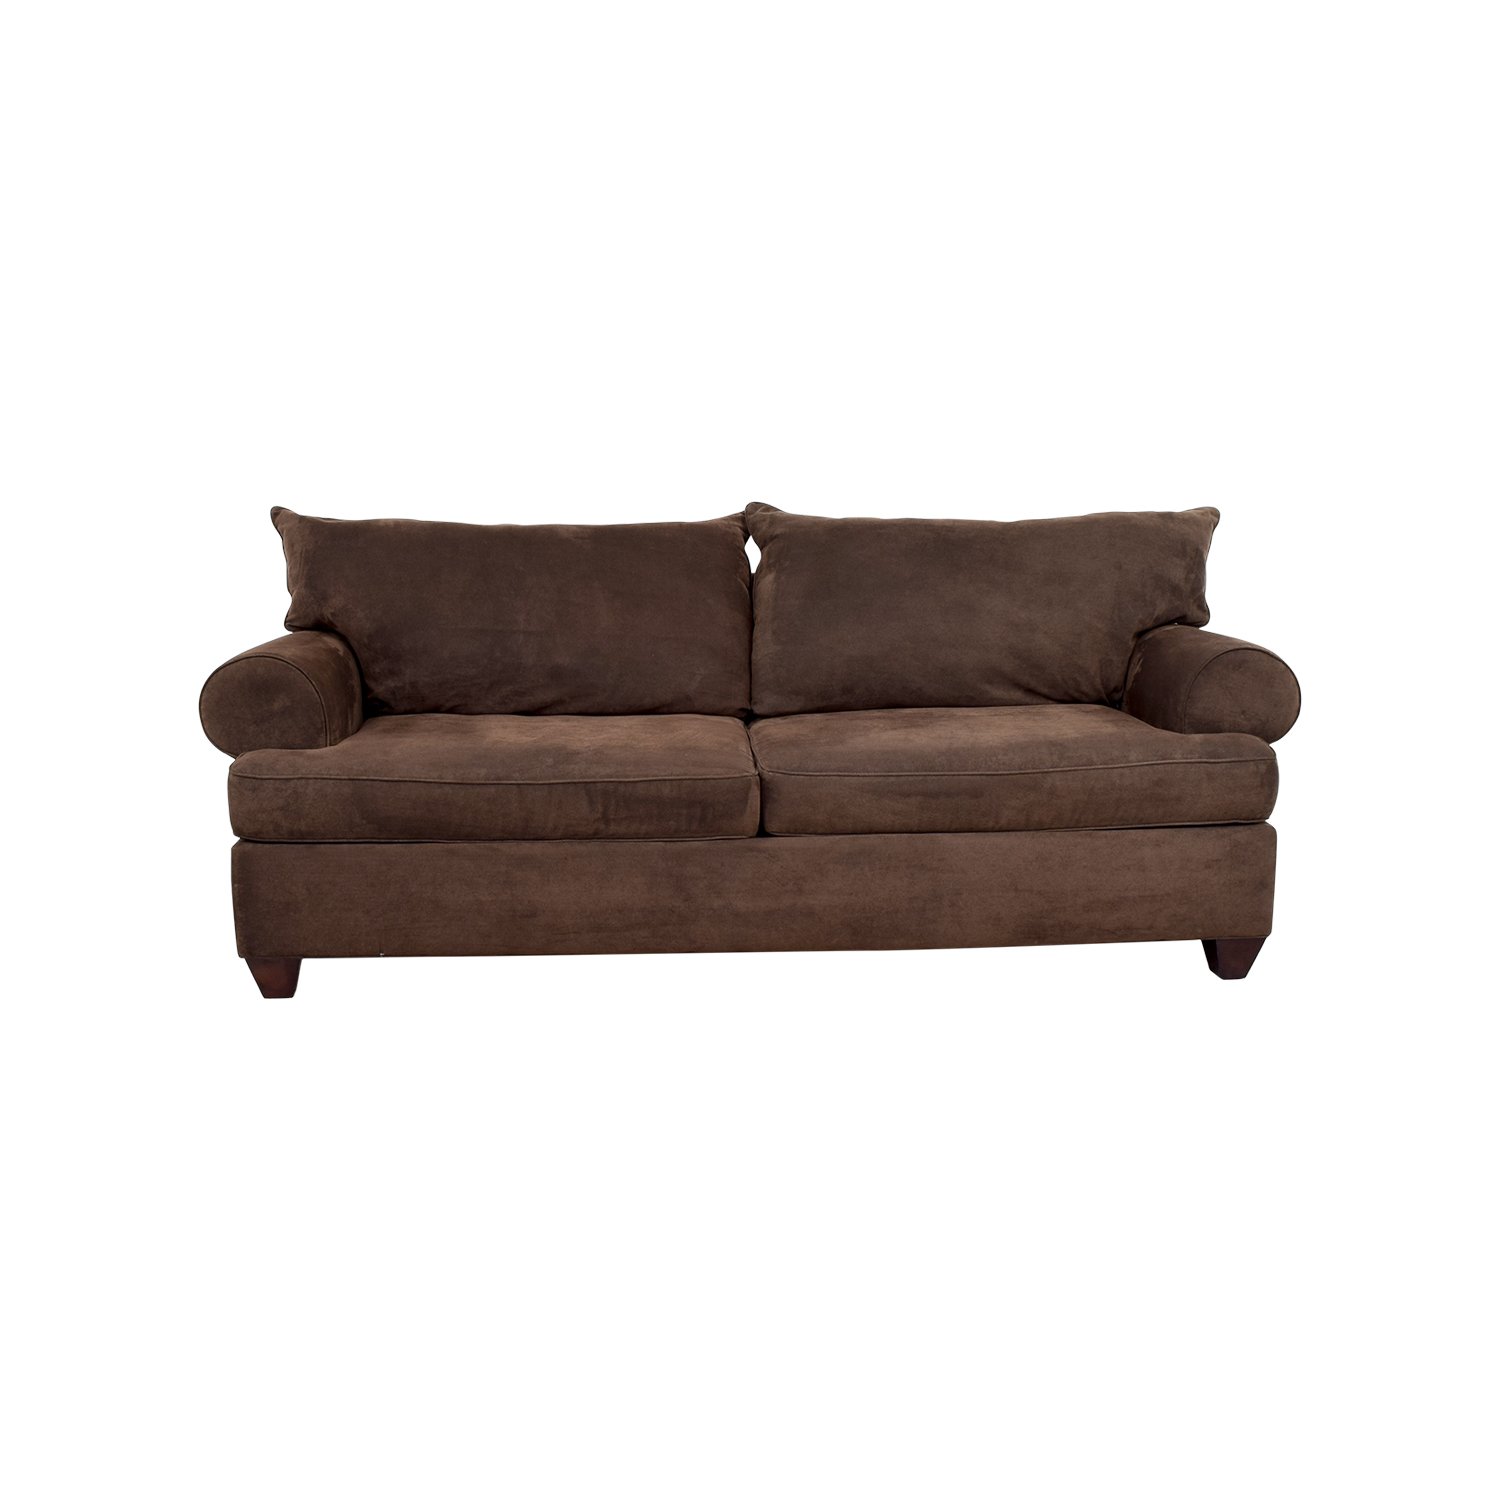 Corduroy Sofa Sectional Brown Corduroy Sofa Vista 3 Piece Sectional Ashley